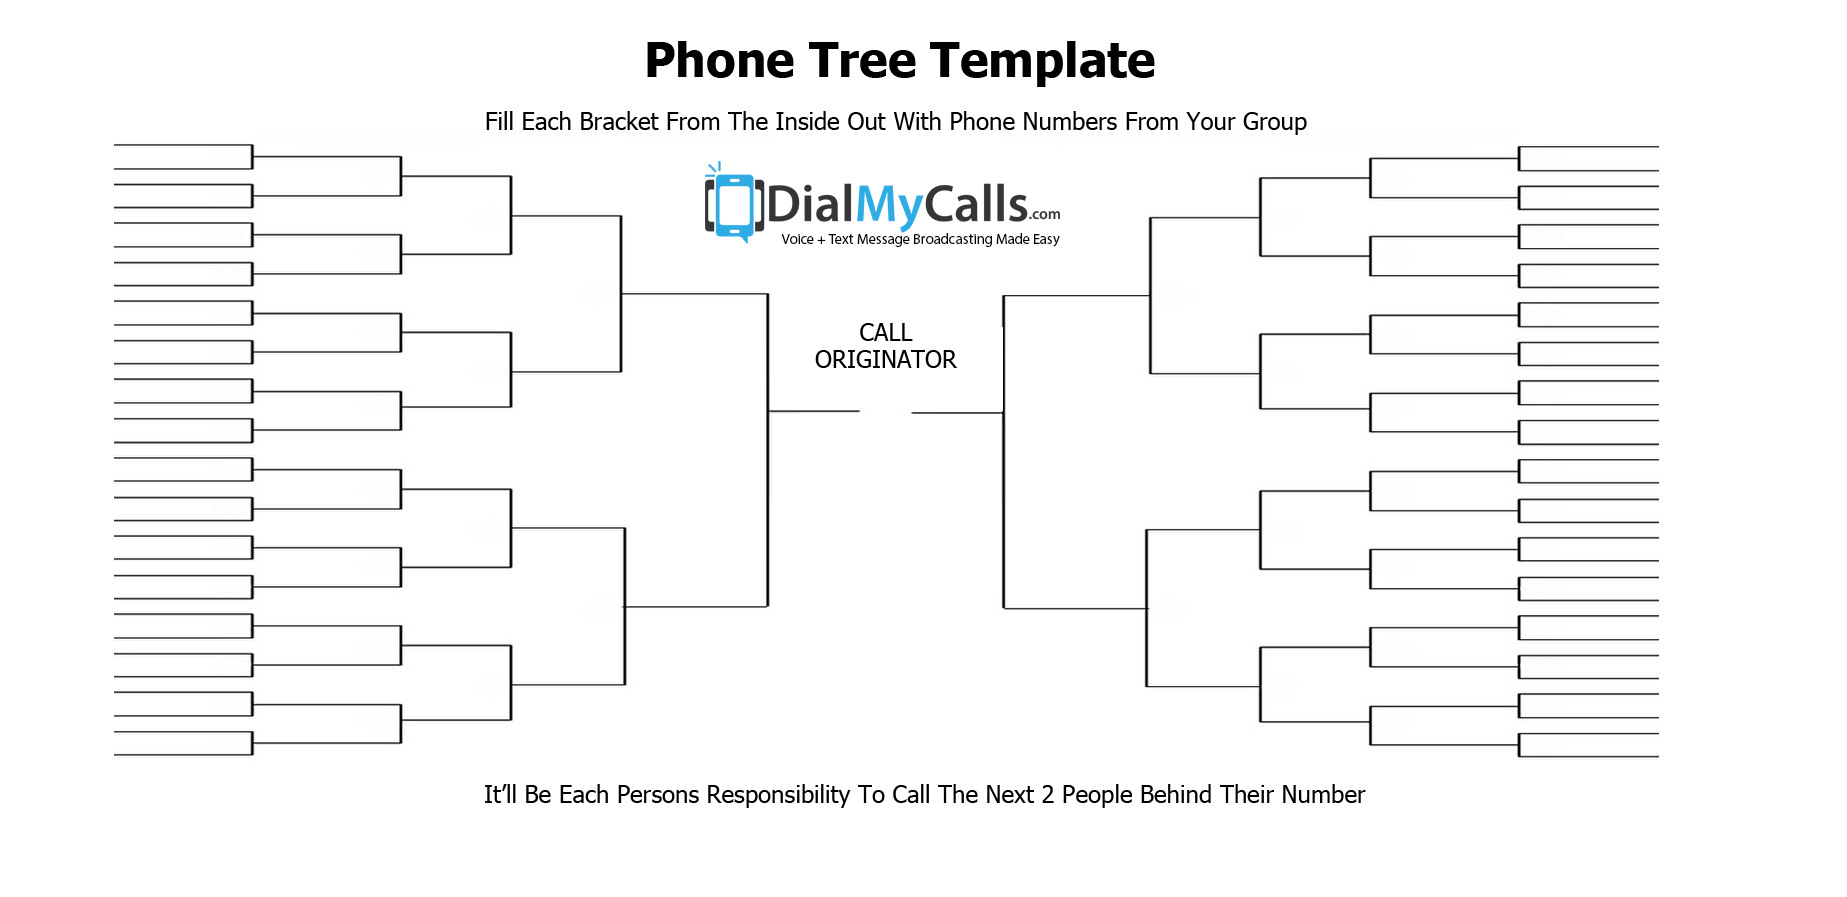 Advanced Phone Tree Template